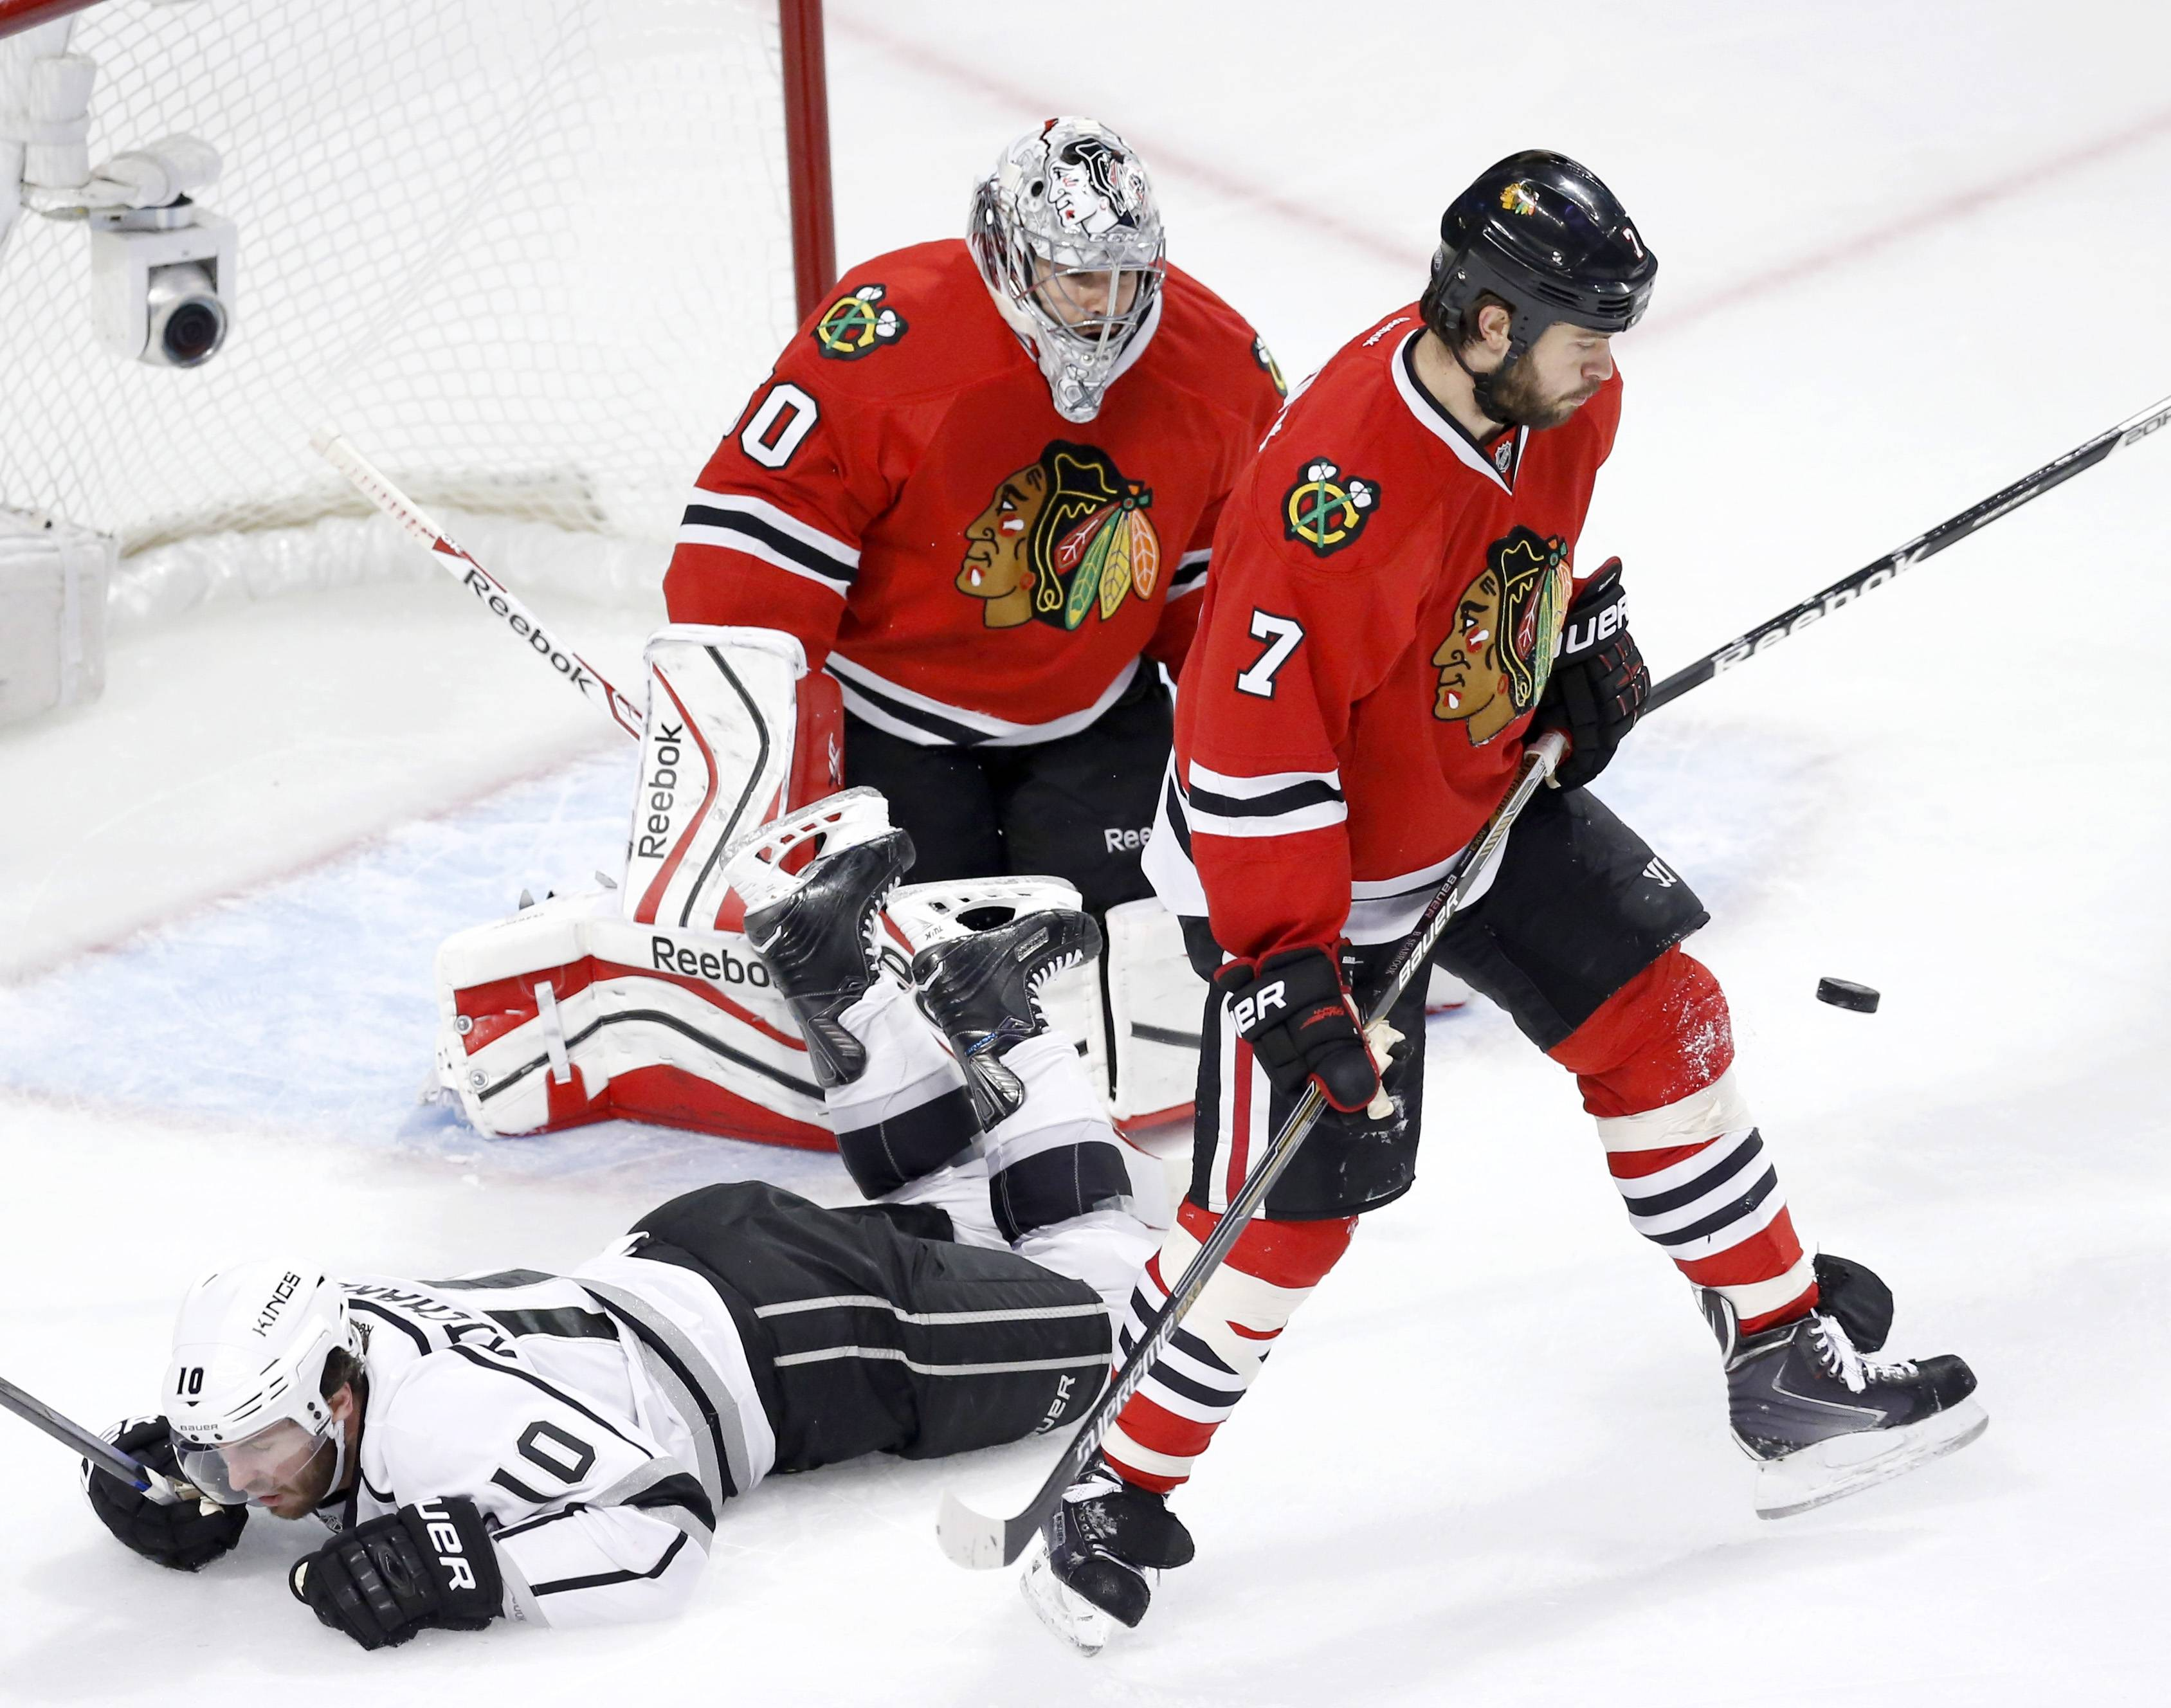 "In this photo taken Sunday, Chicago Blackhawks defenseman Brent Seabrook (7) deflects a shot on goal away from goalie Corey Crawford (50) as Los Angeles Kings center Mike Richards falls to the ice during the second period of Game 1 of the Western Conference finals in the NHL hockey Stanley Cup playoffs in Chicago.  ""Between whistles and during the play, I think there's going to be a lot of physical play -- a lot of stuff going on,"" Hawks captain Jonathan Toews said."